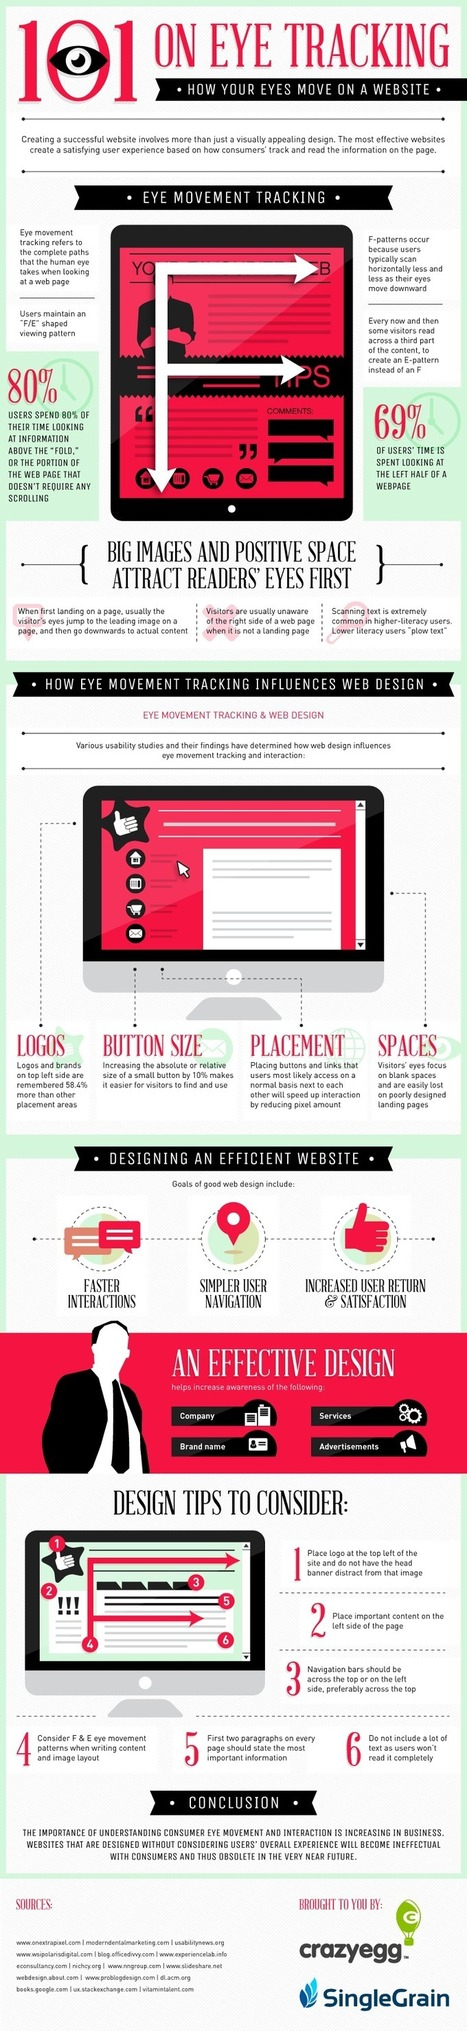 Eye Tracking 101: How Your Eyes Move on a Website | Empresa digital: creatividad, innovación, marketing | Scoop.it